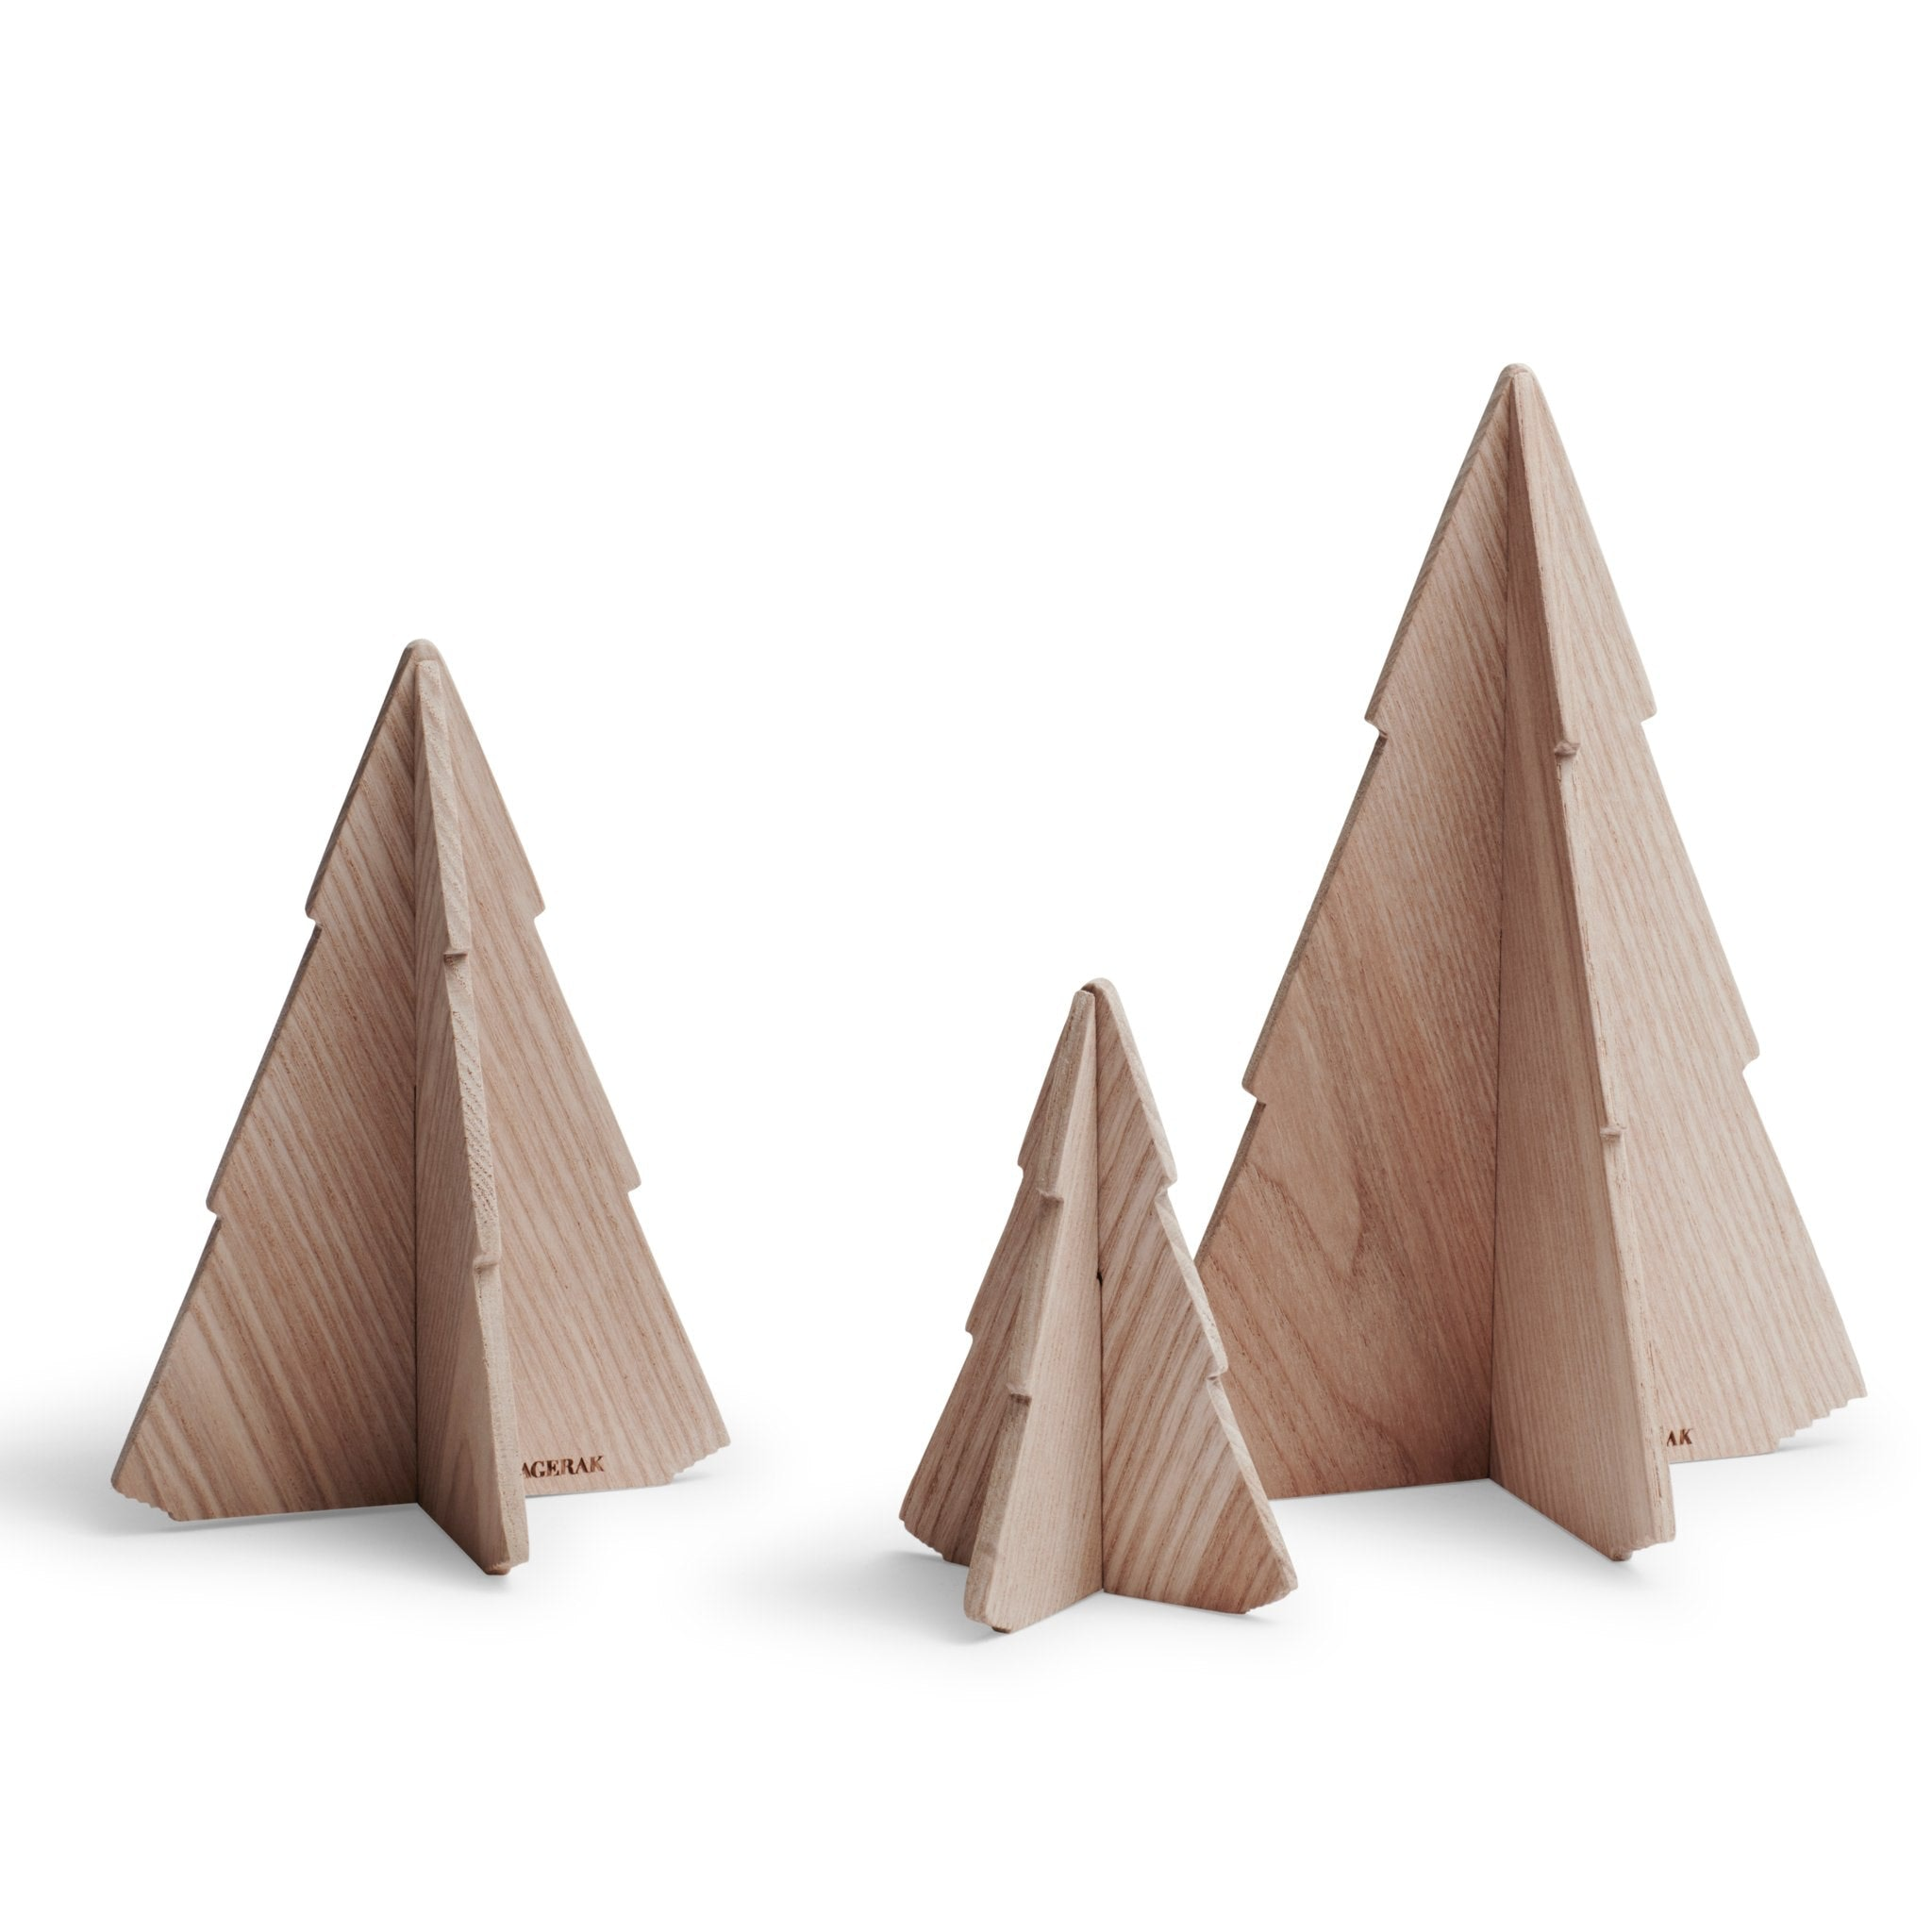 Set of 3 Spruce Trees by Skagerak